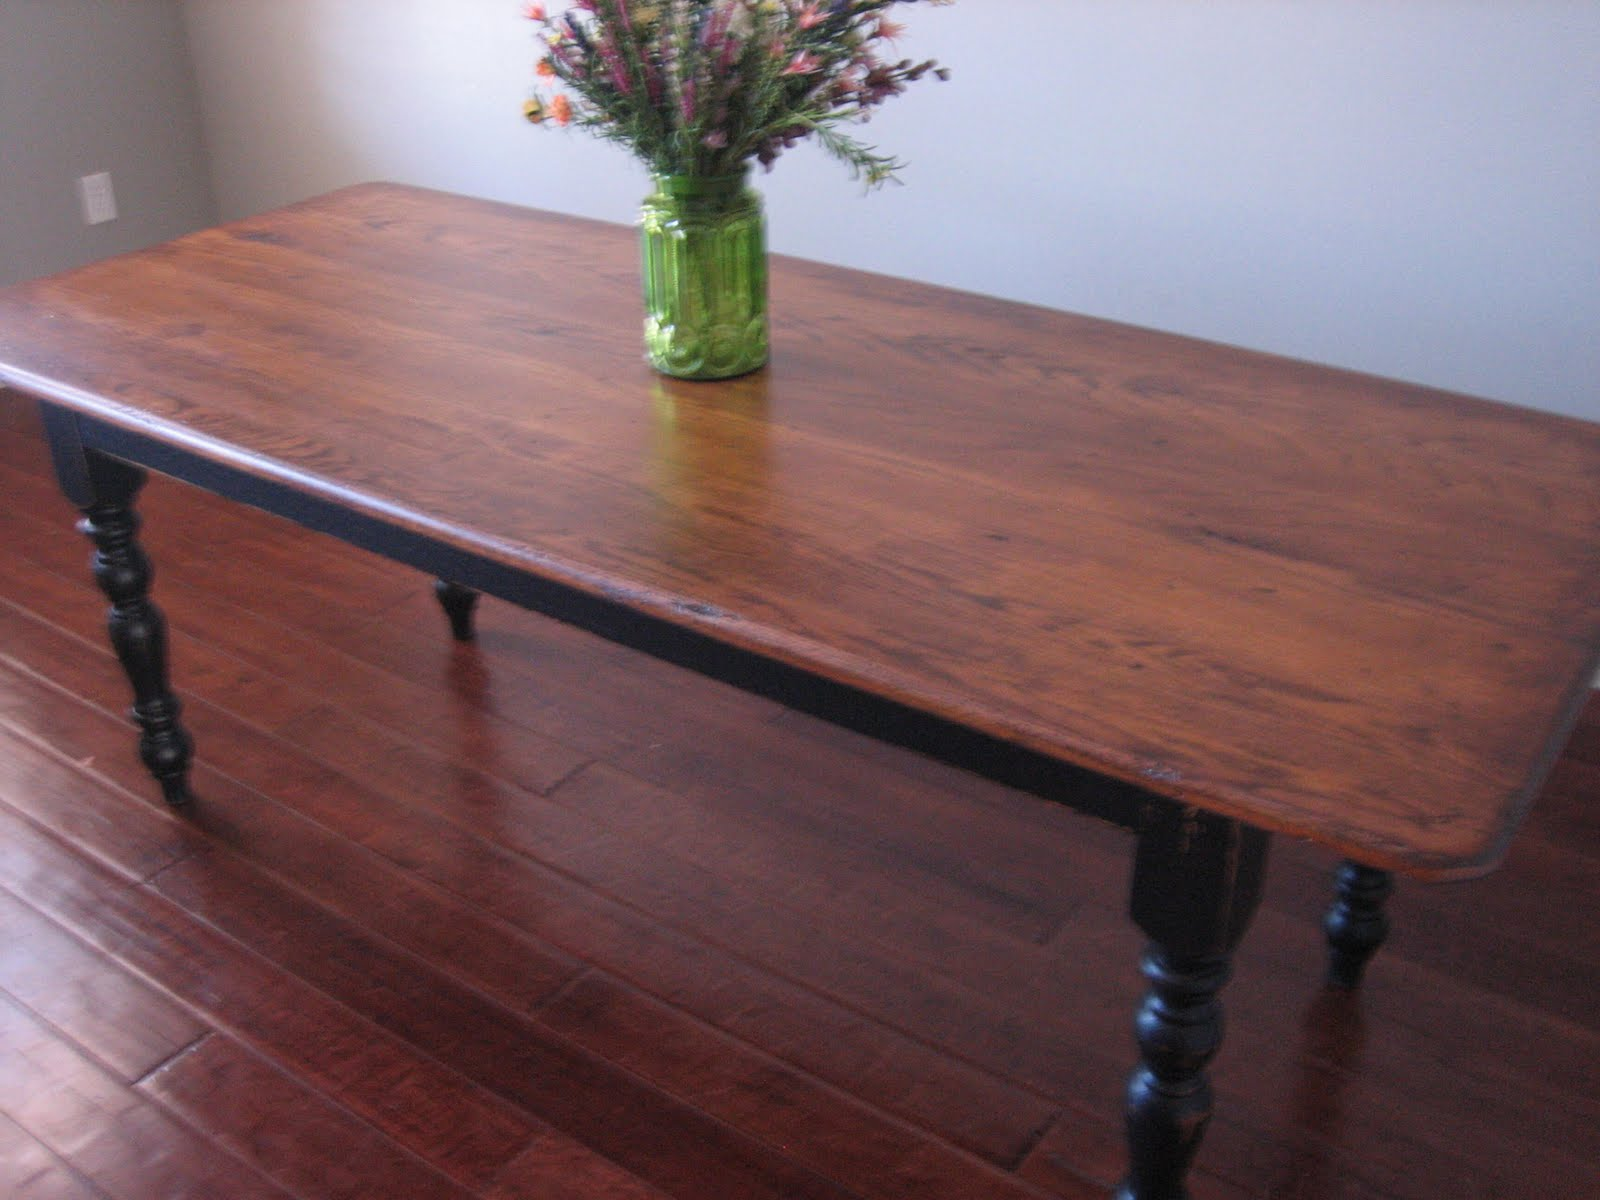 Table refinish ideas dining table refinish dining table for Redo table top ideas